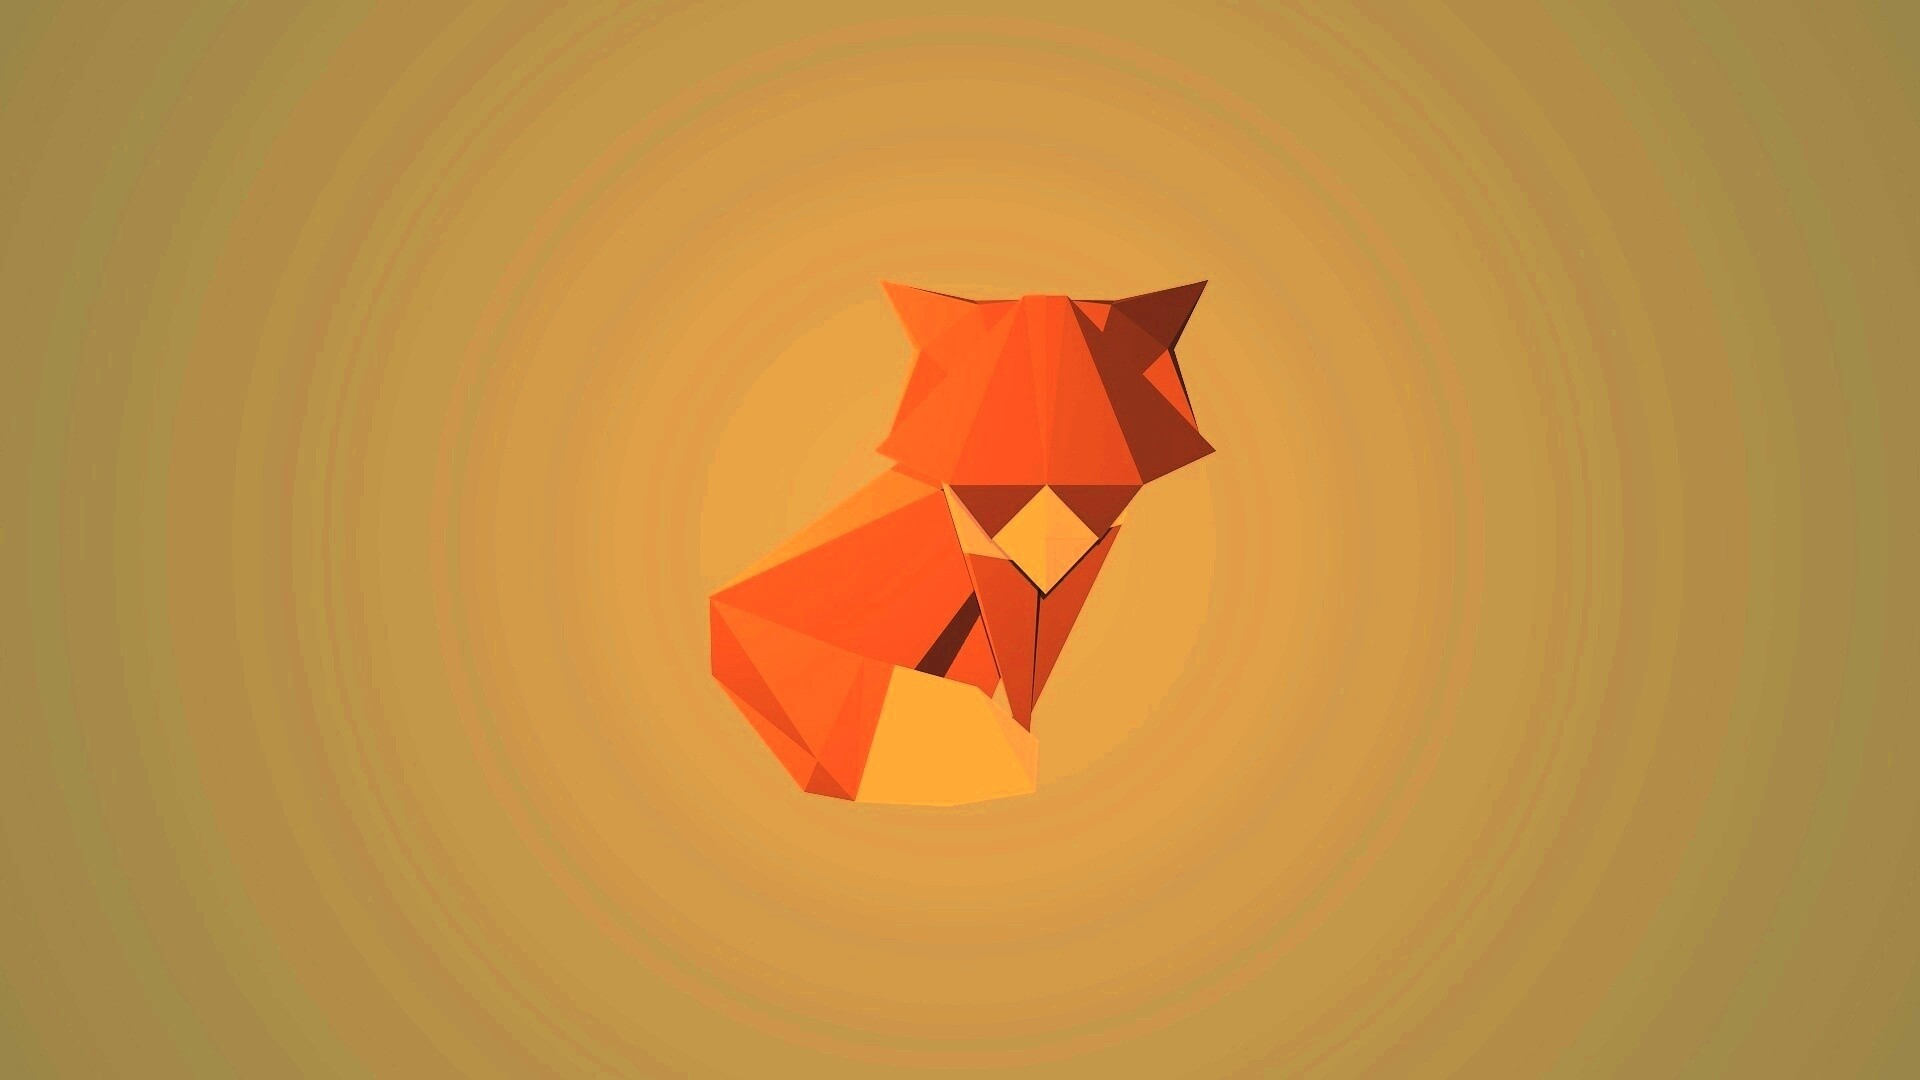 Cute Origami Wallpaper Picture hd